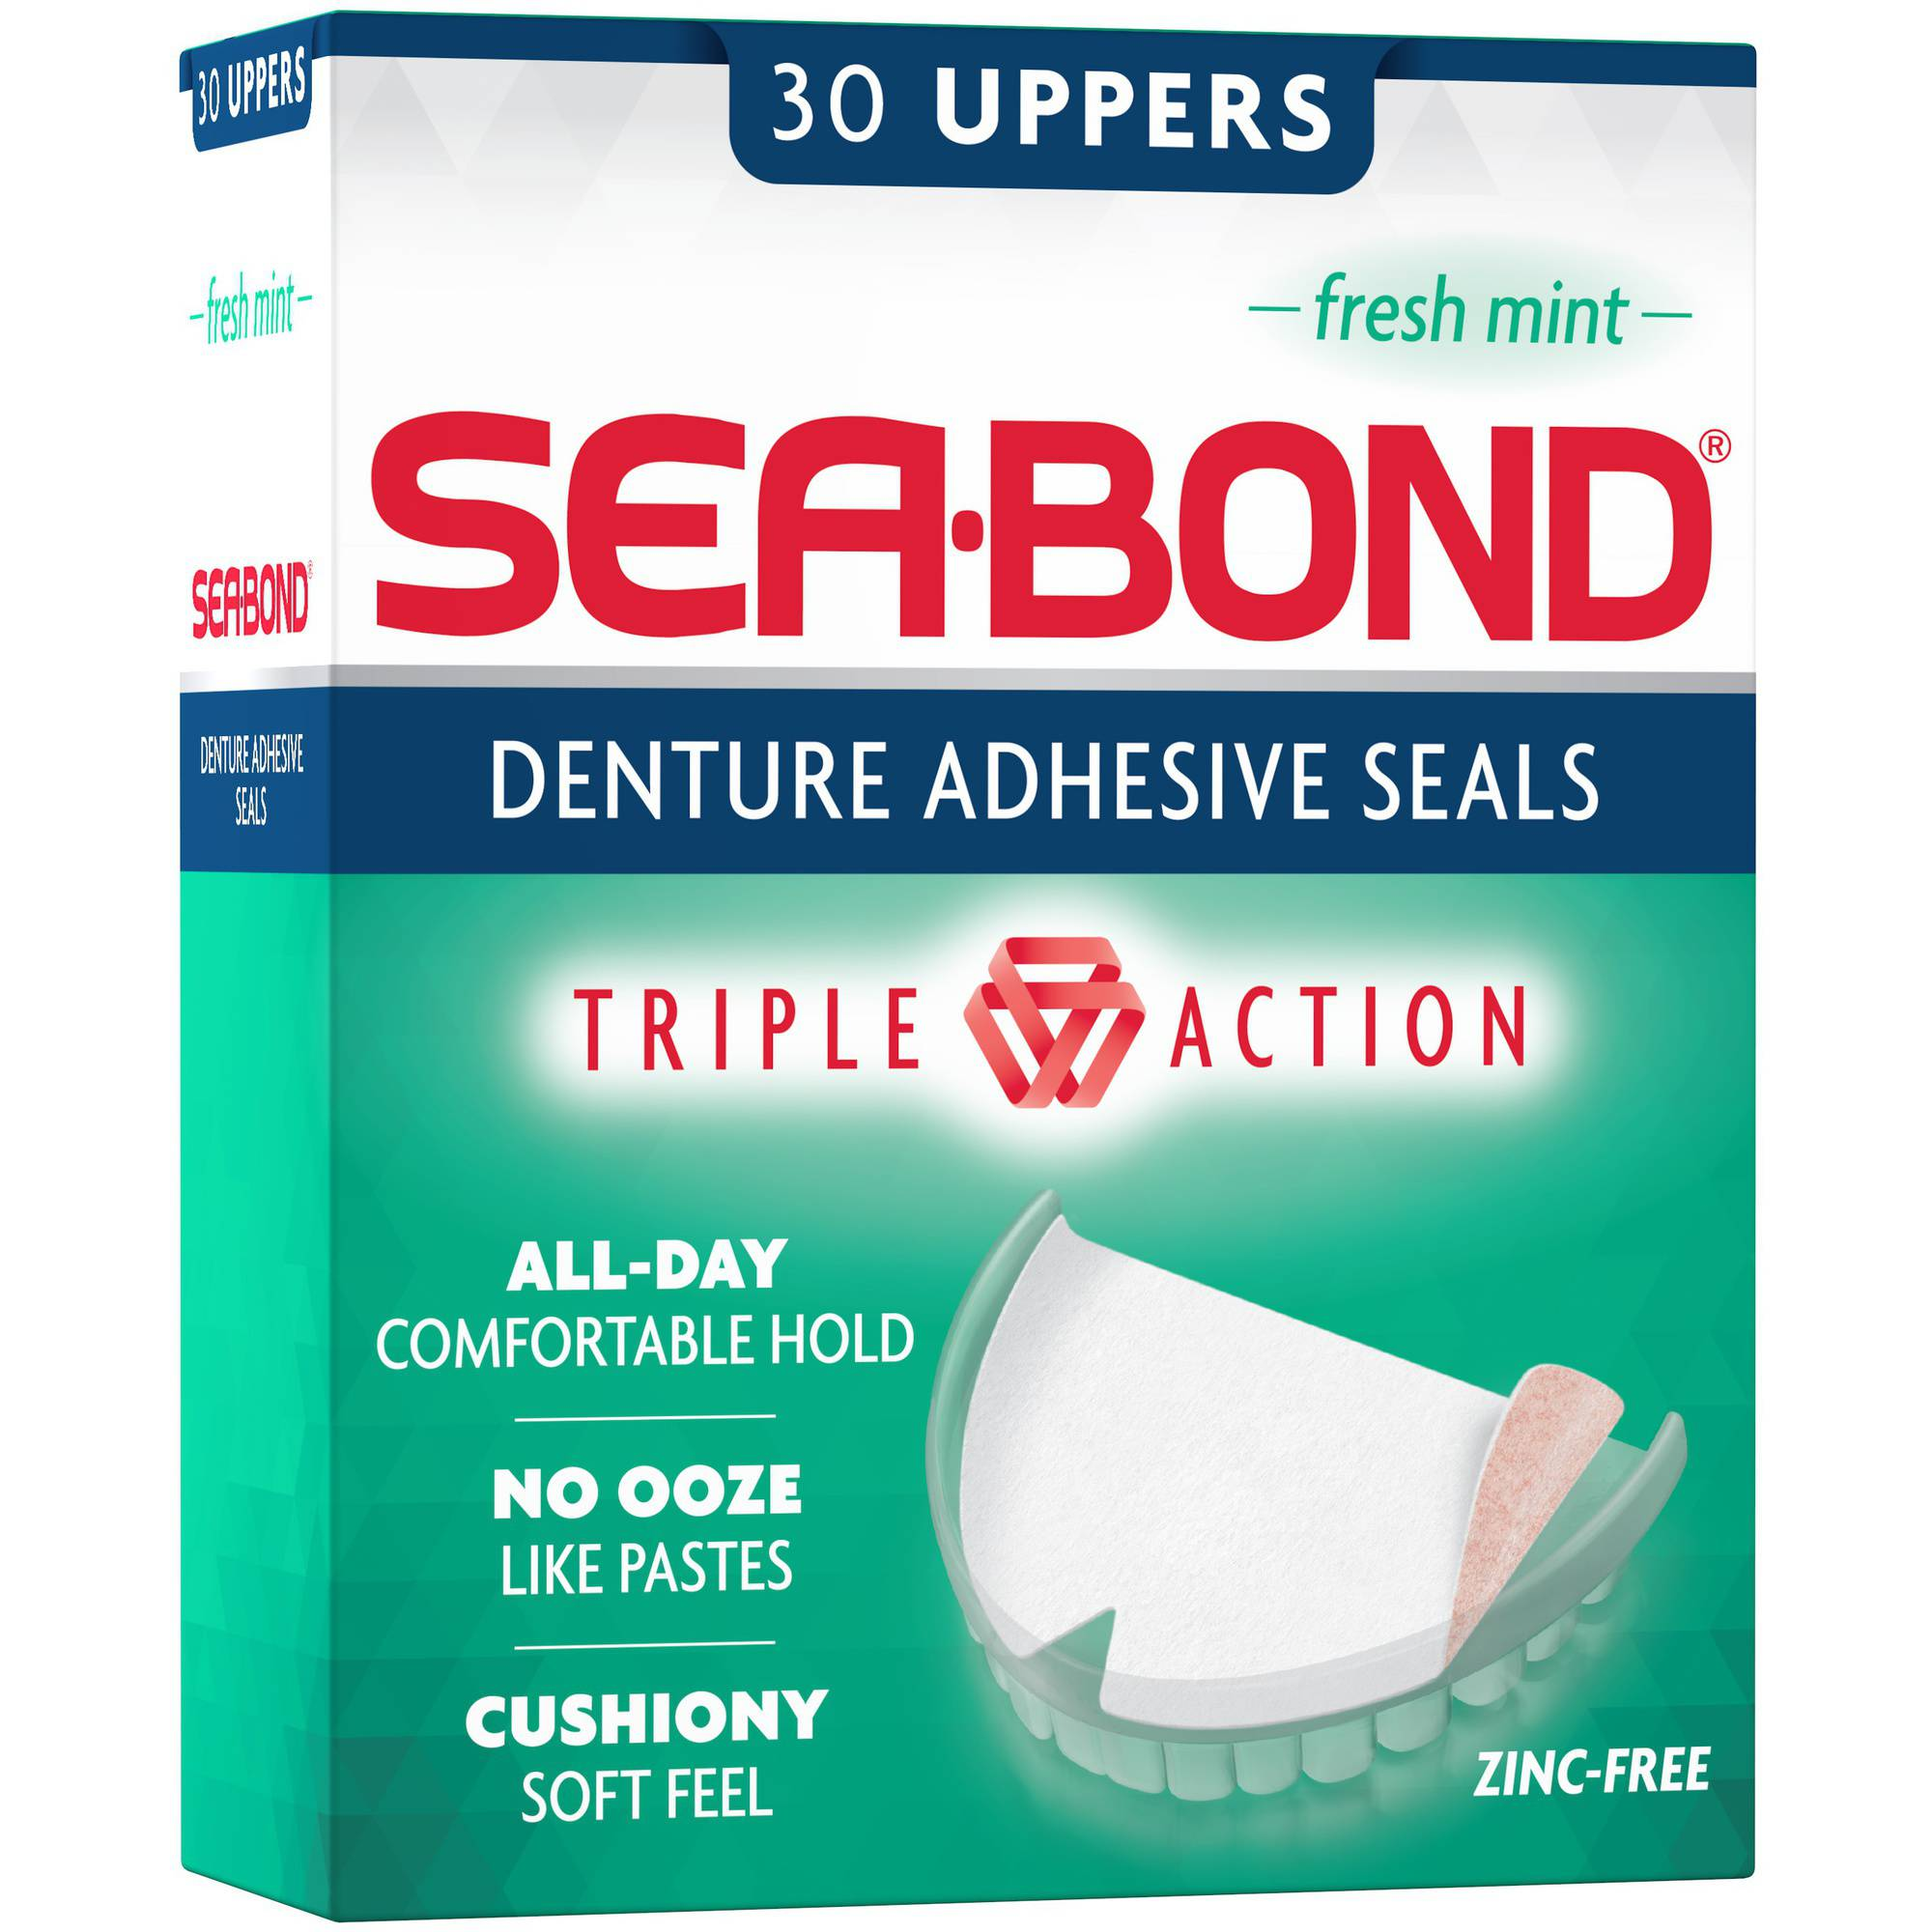 Sea-Bond Uppers Fresh Mint Denture Adhesive Wafers, 30 ct